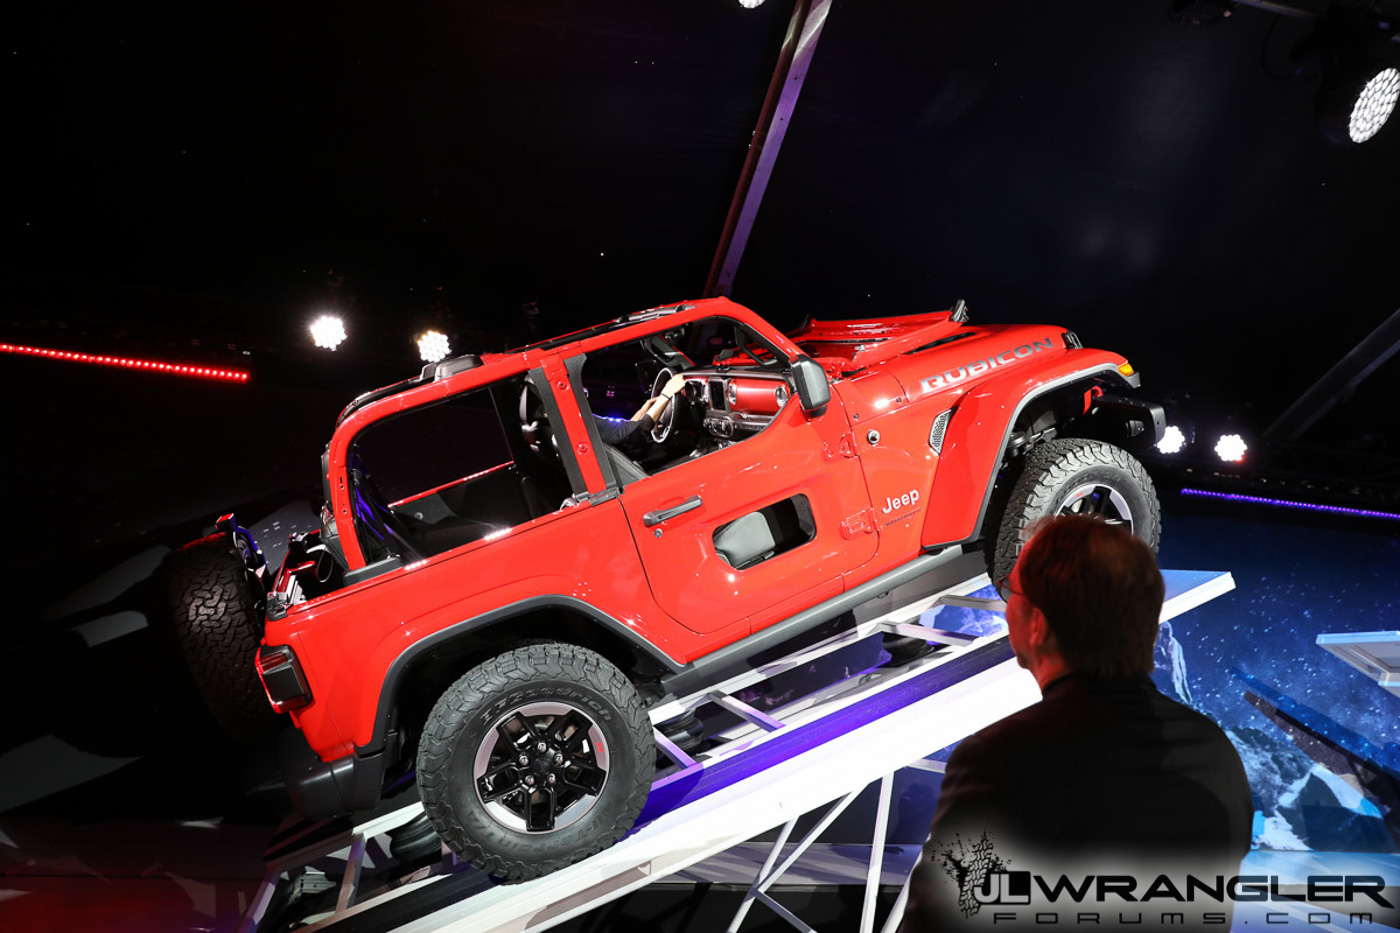 2018-Jeep-Wrangler-JL-Reveal-Rubicon-Firecracker-Red-1.jpg